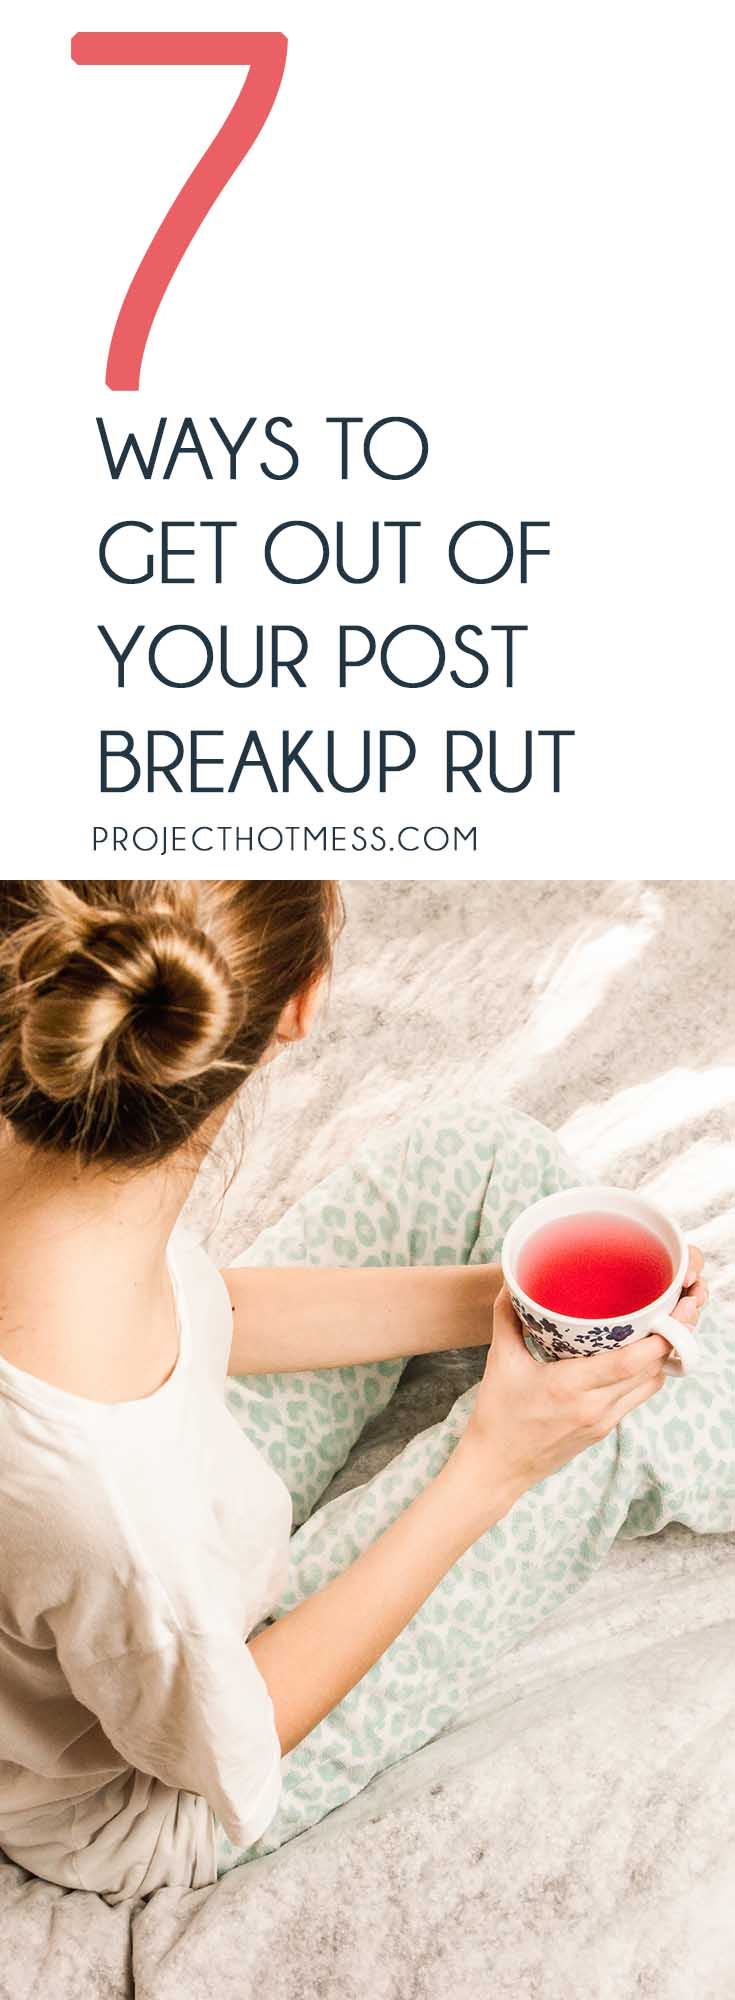 After a breakup, there's a period of adjustment. But for some people this becomes even more. Use these strategies to help get our of your post breakup rut and start focusing on how amazing you are again.